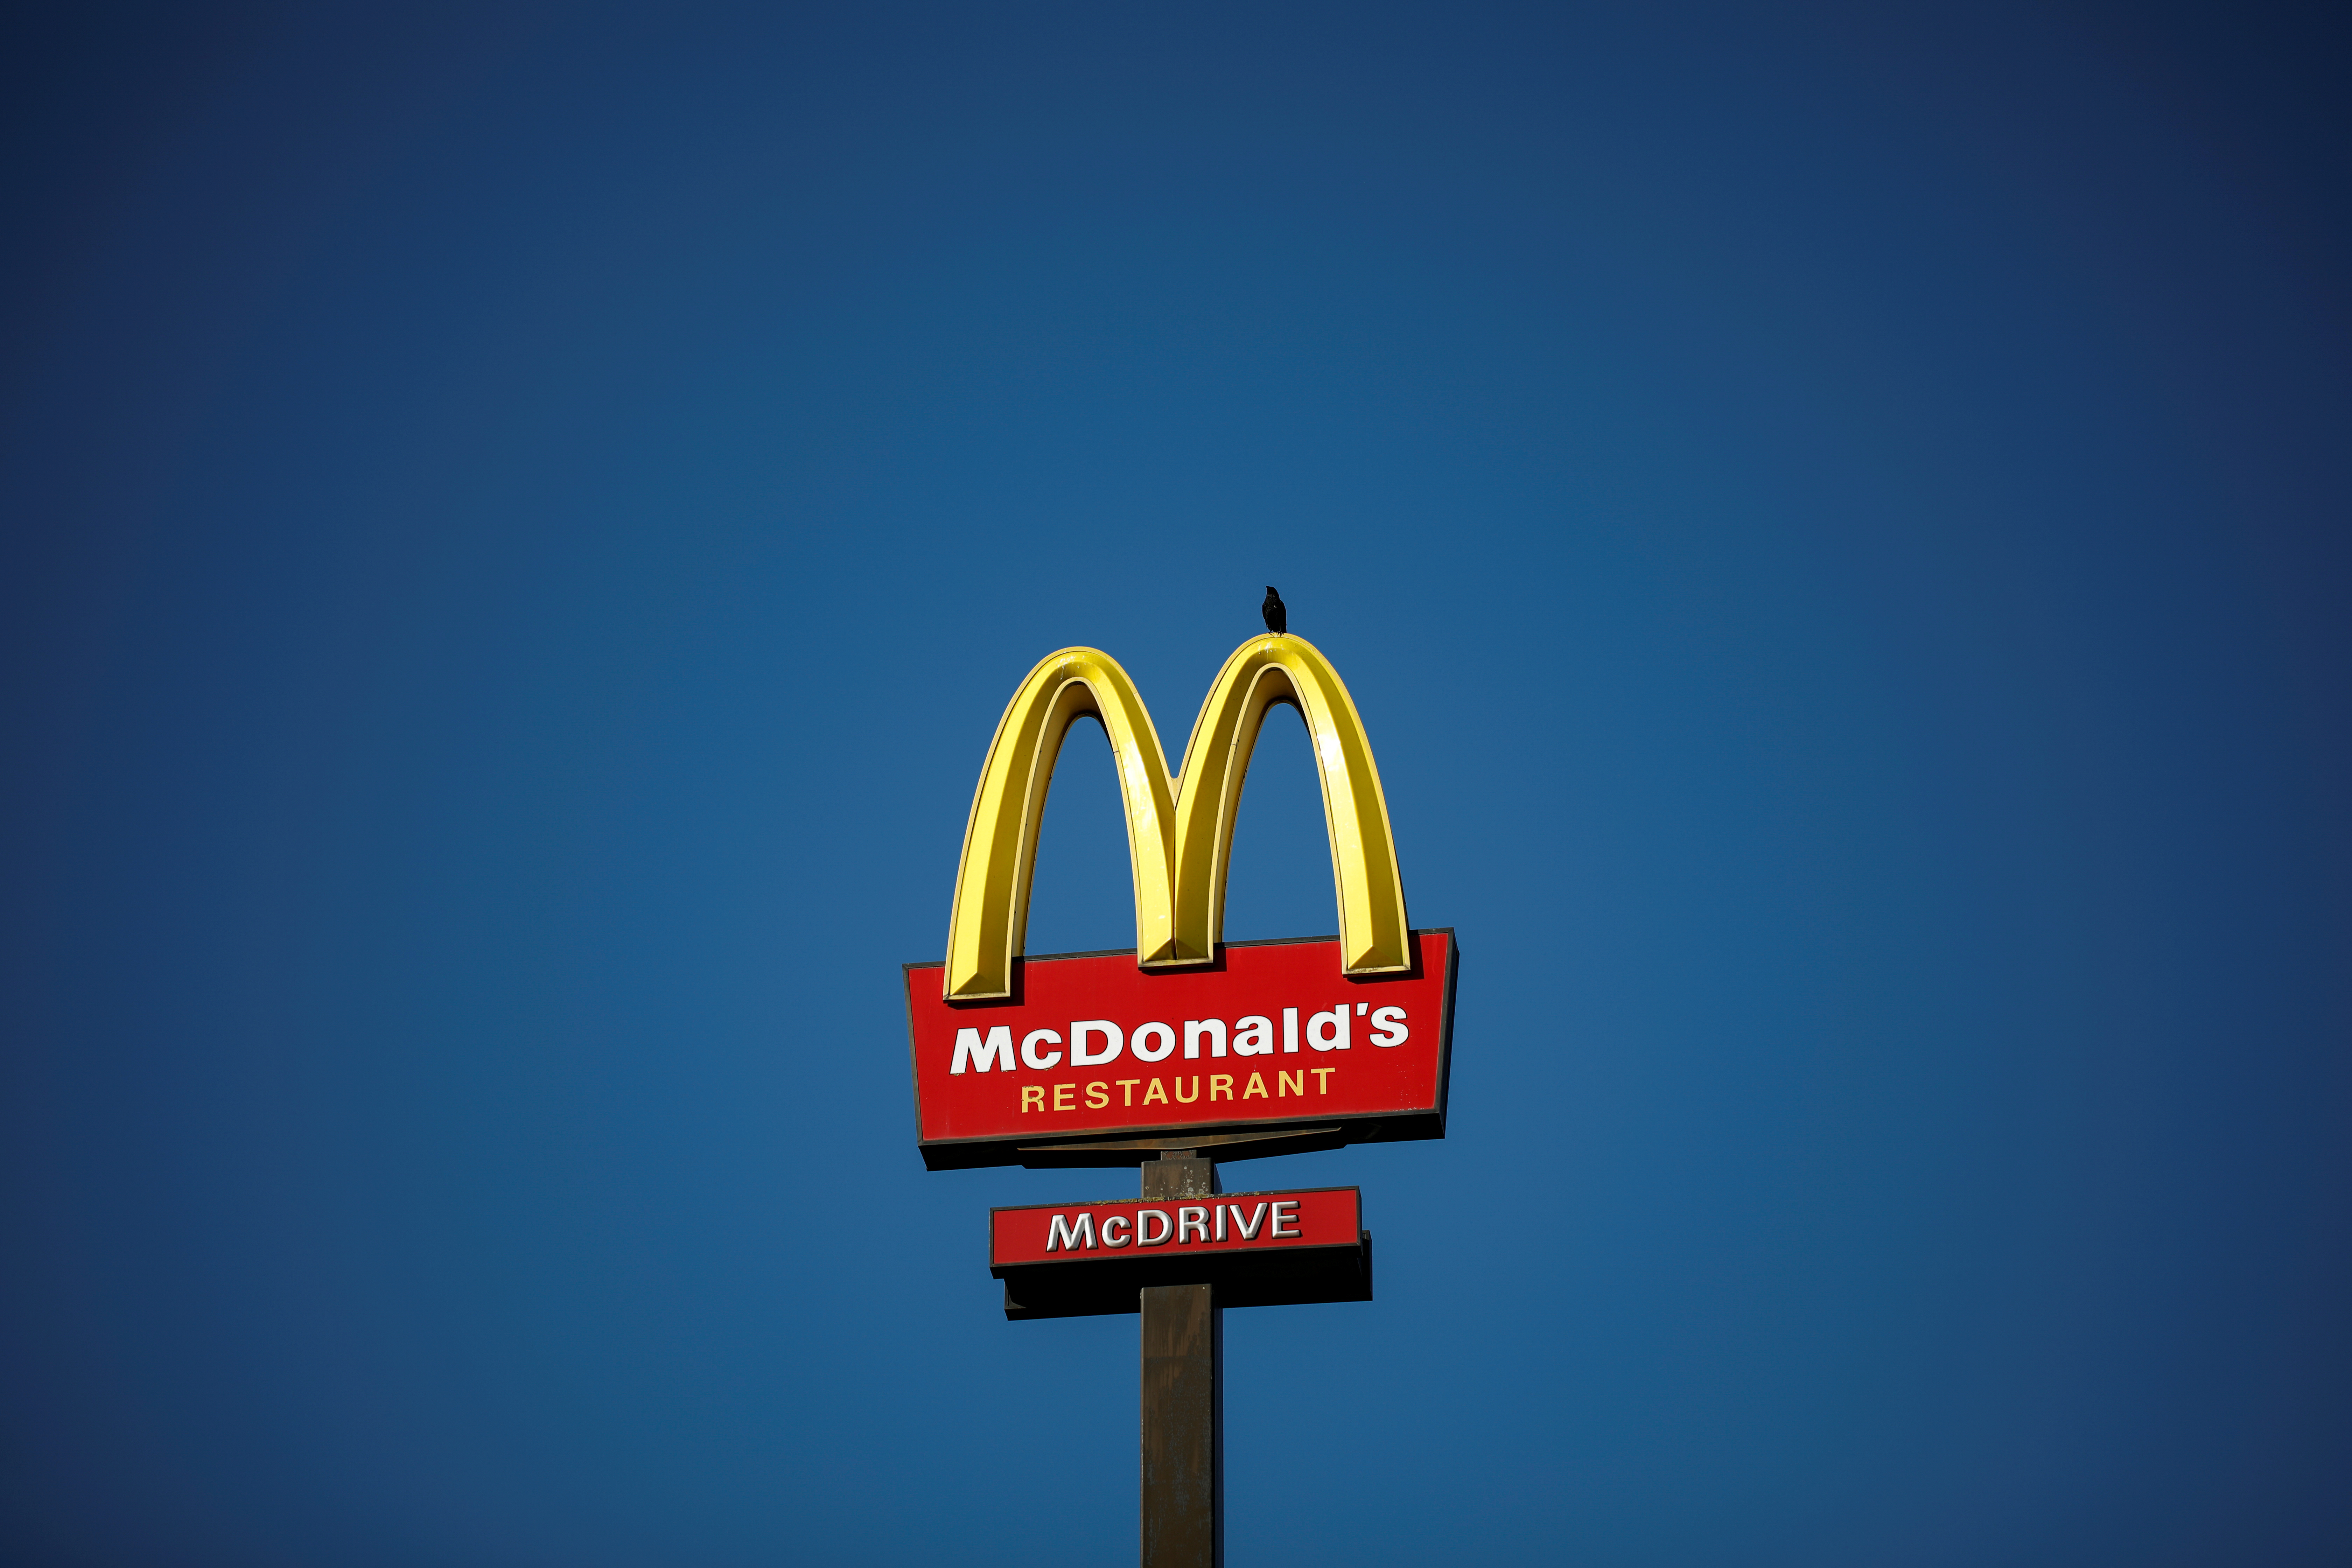 The McDonald's company logo stands on a sign outside a restaurant in Bretigny-sur-Orge, near Paris, France, July 30, 2020. REUTERS/Benoit Tessier/File Photo